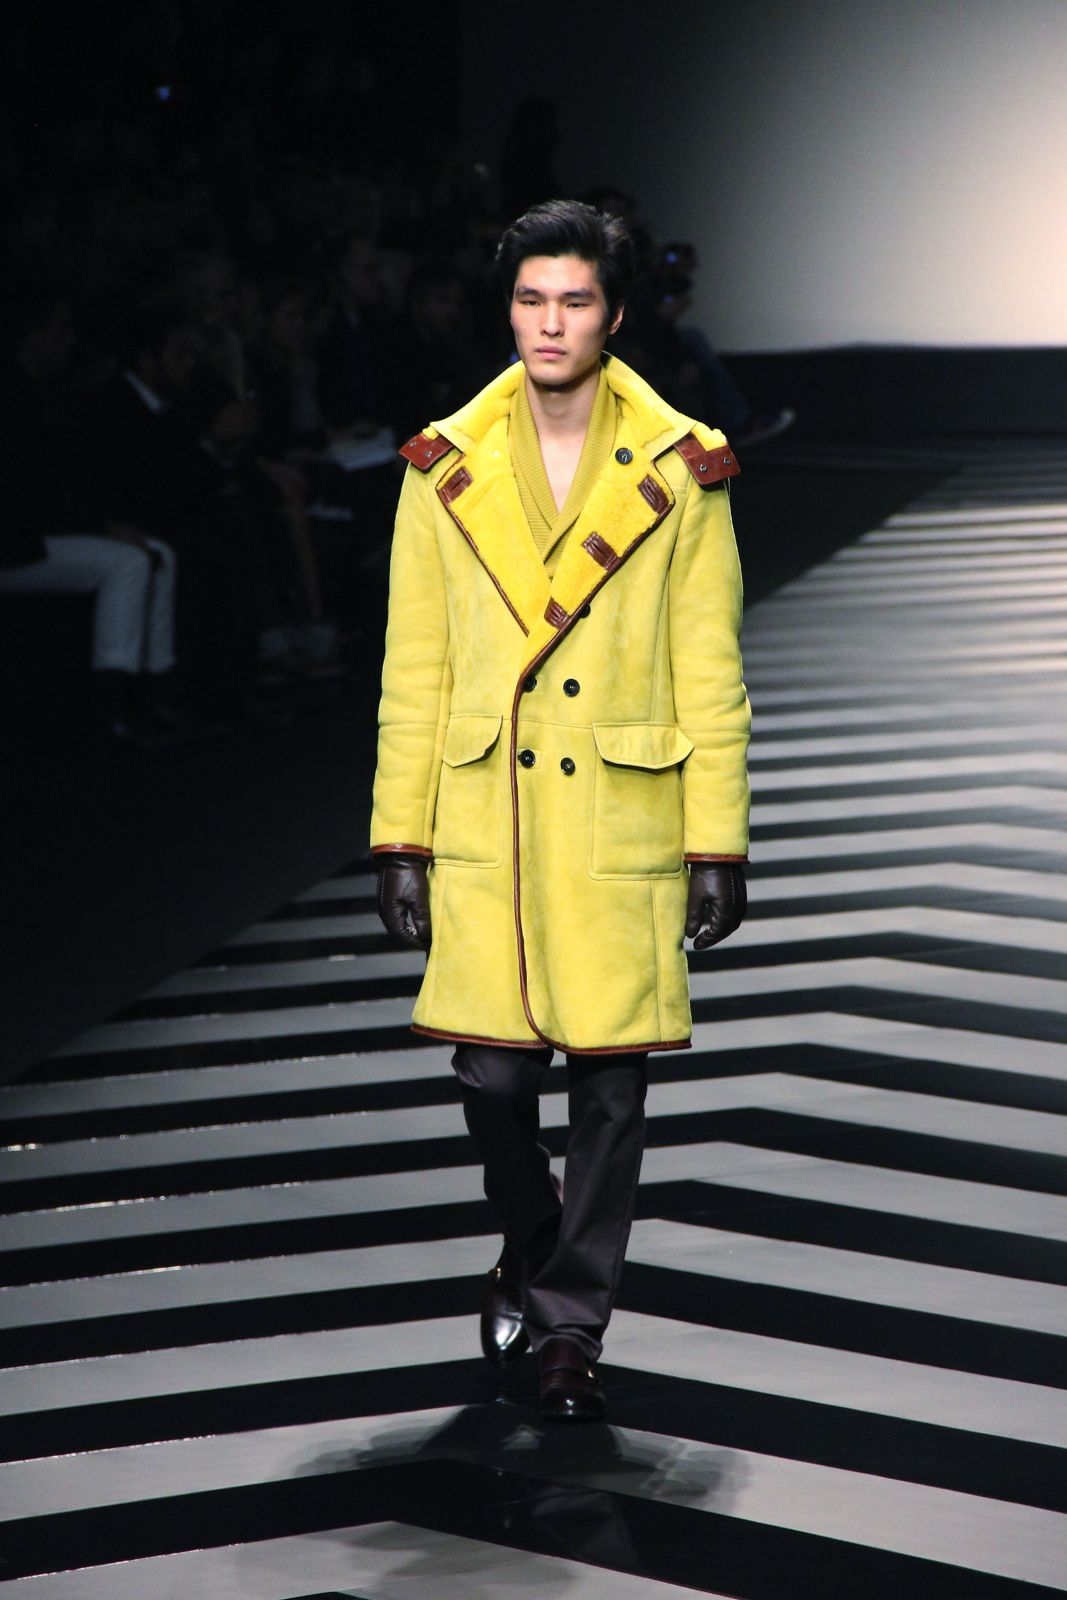 Roberto Cavalli Men's Collection Fall Winter 2012-2013 Milano Fashion Week